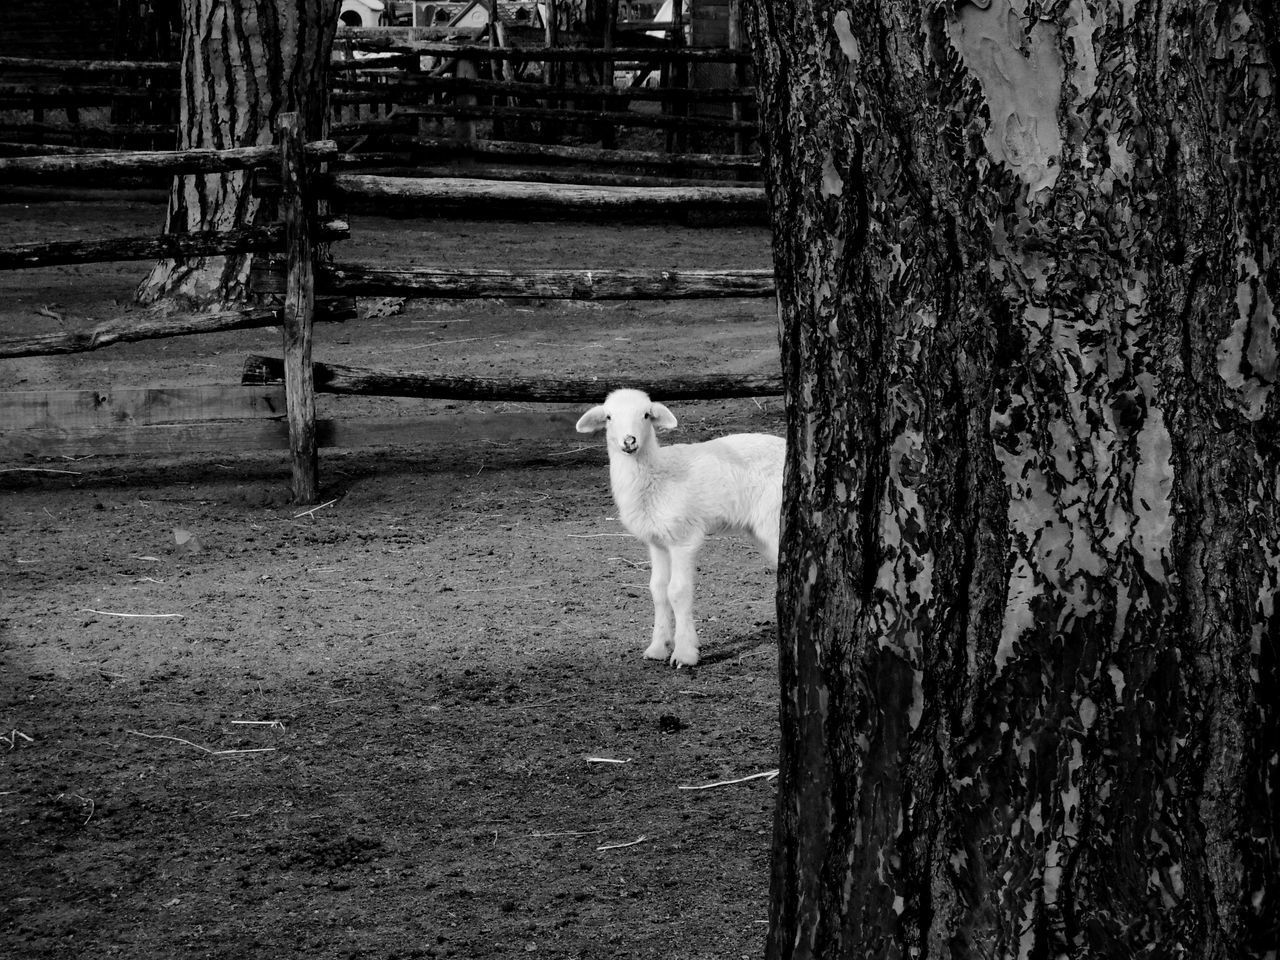 VIEW OF DOG STANDING ON GROUND